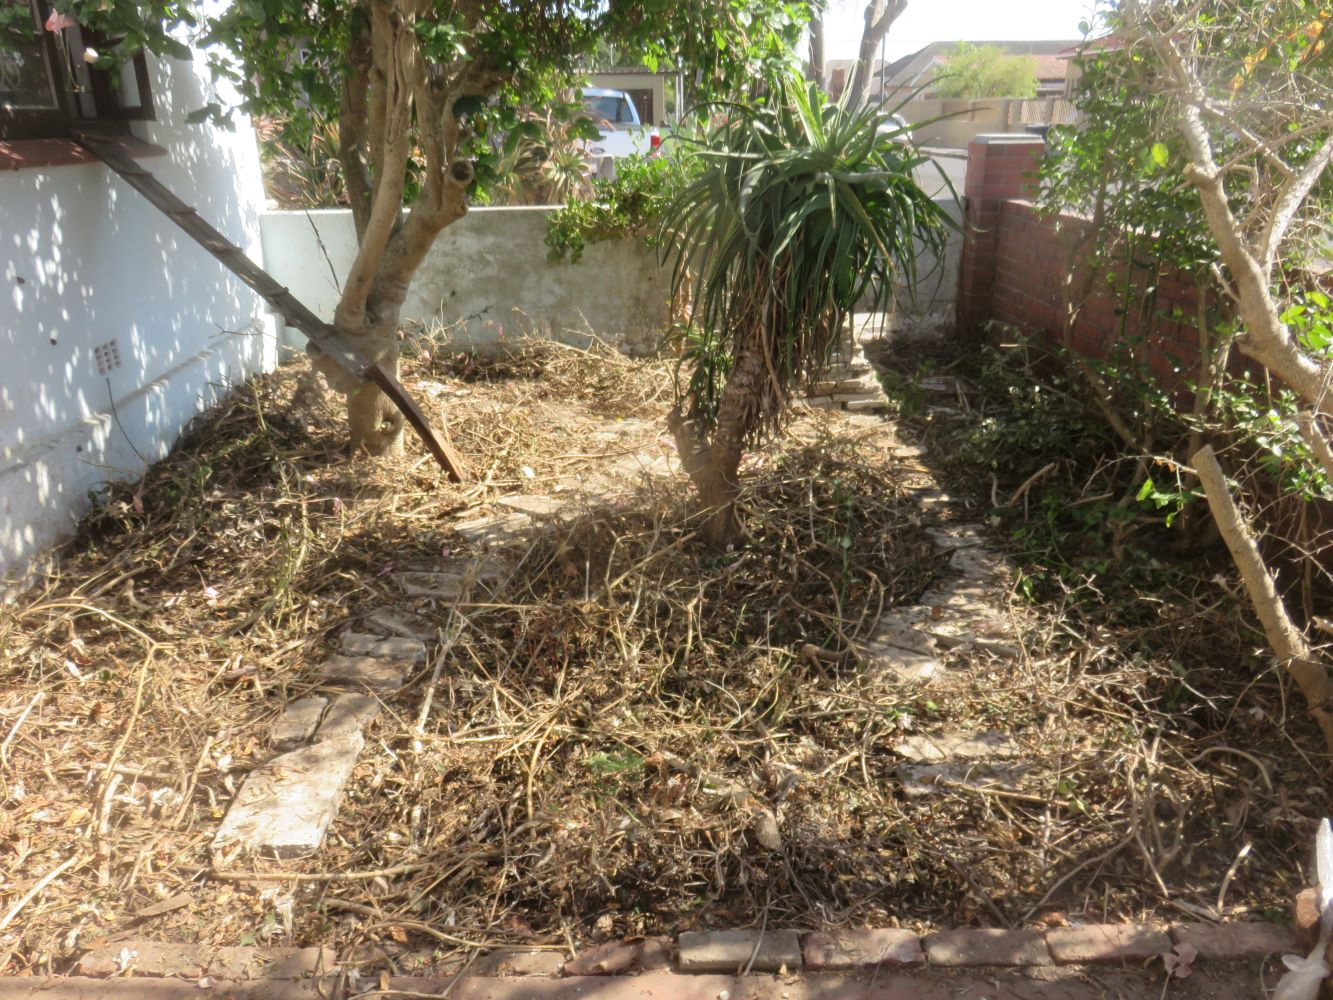 On the way to healthy soil I hope. The front garden after sowing cover crops, mulching and covering with sticks to stop birds and cats scratching out the seeds.